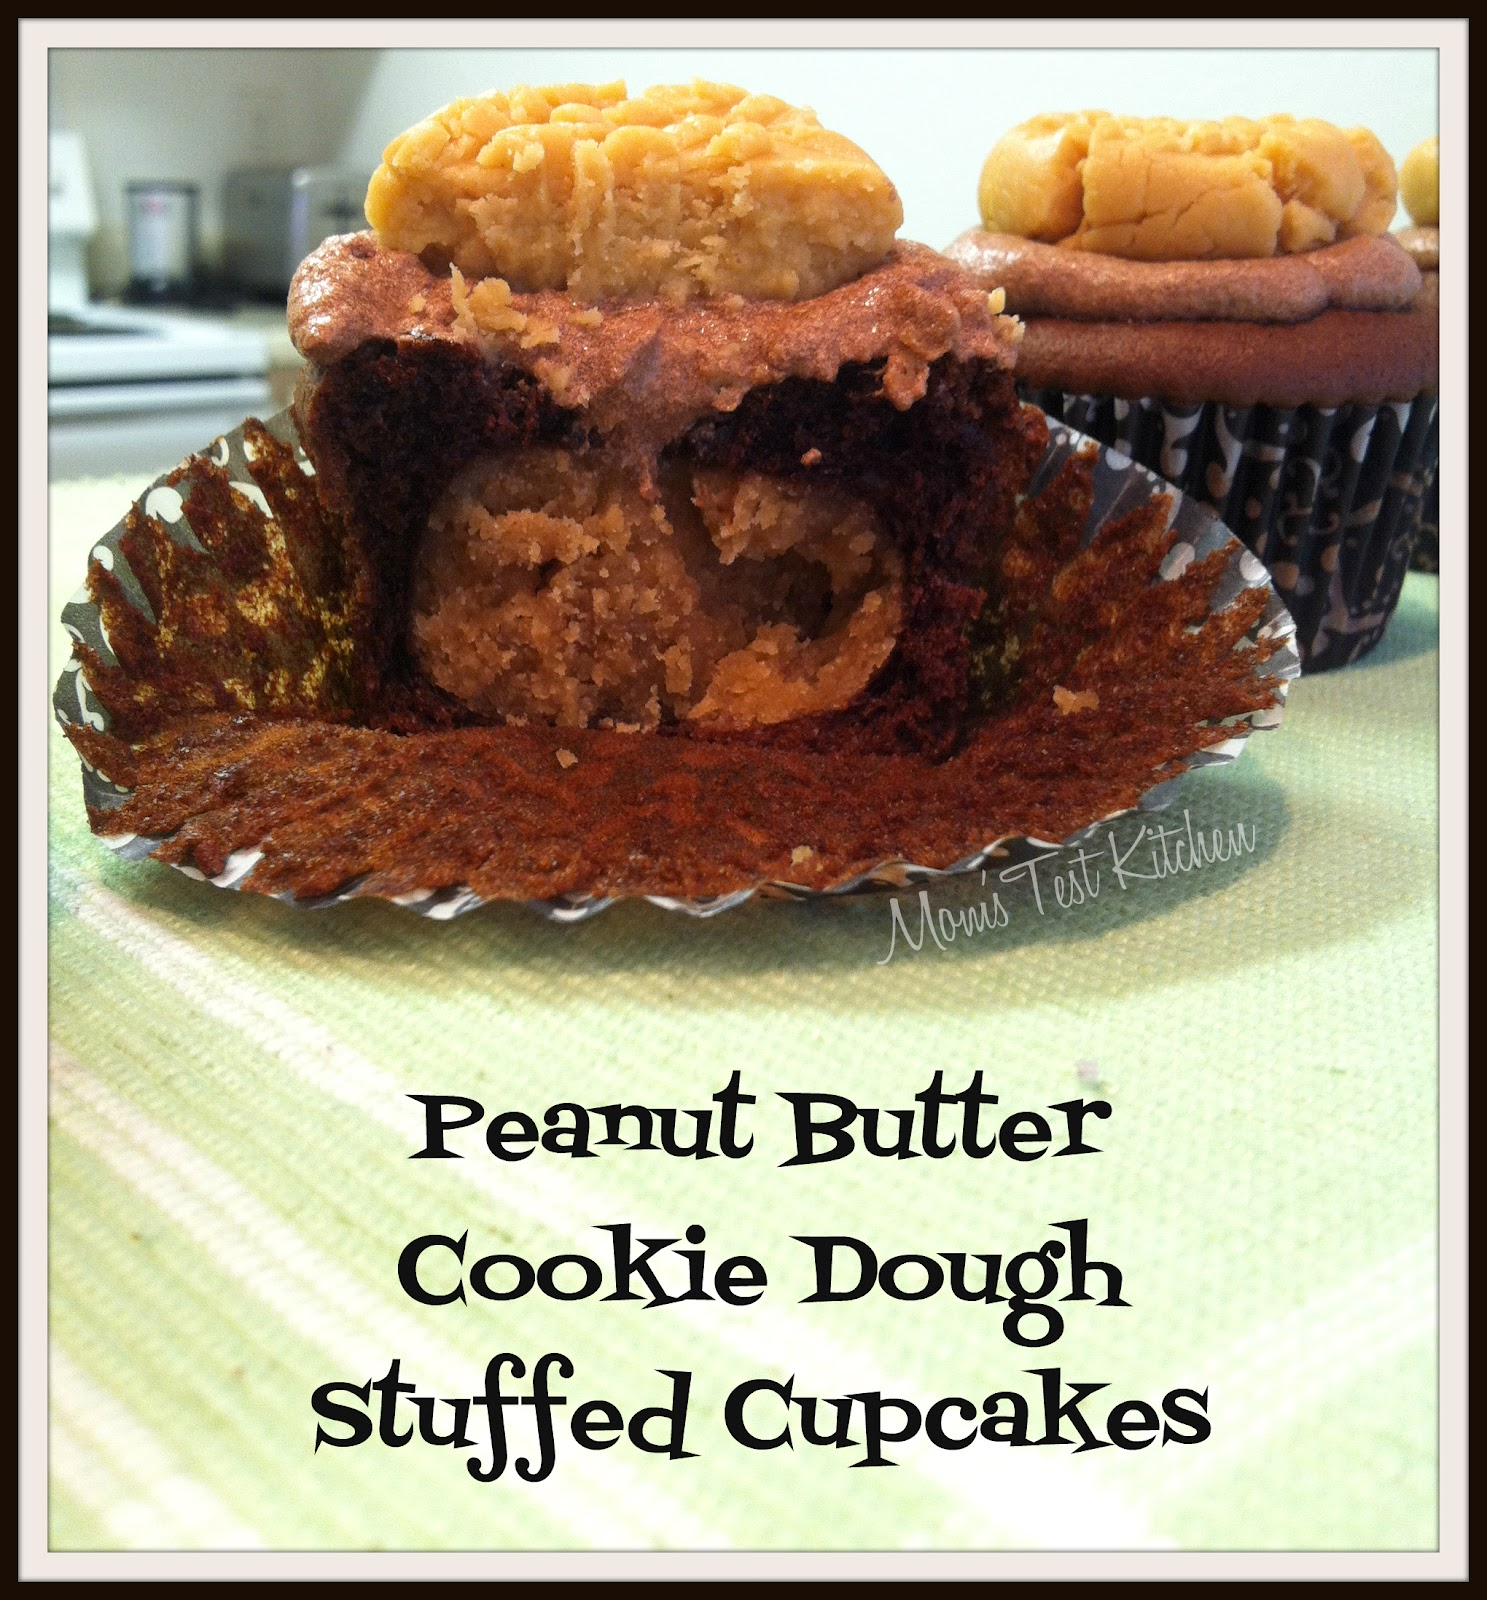 with Chocolate Buttercream Icing & Peanut Butter Cookie Frosting